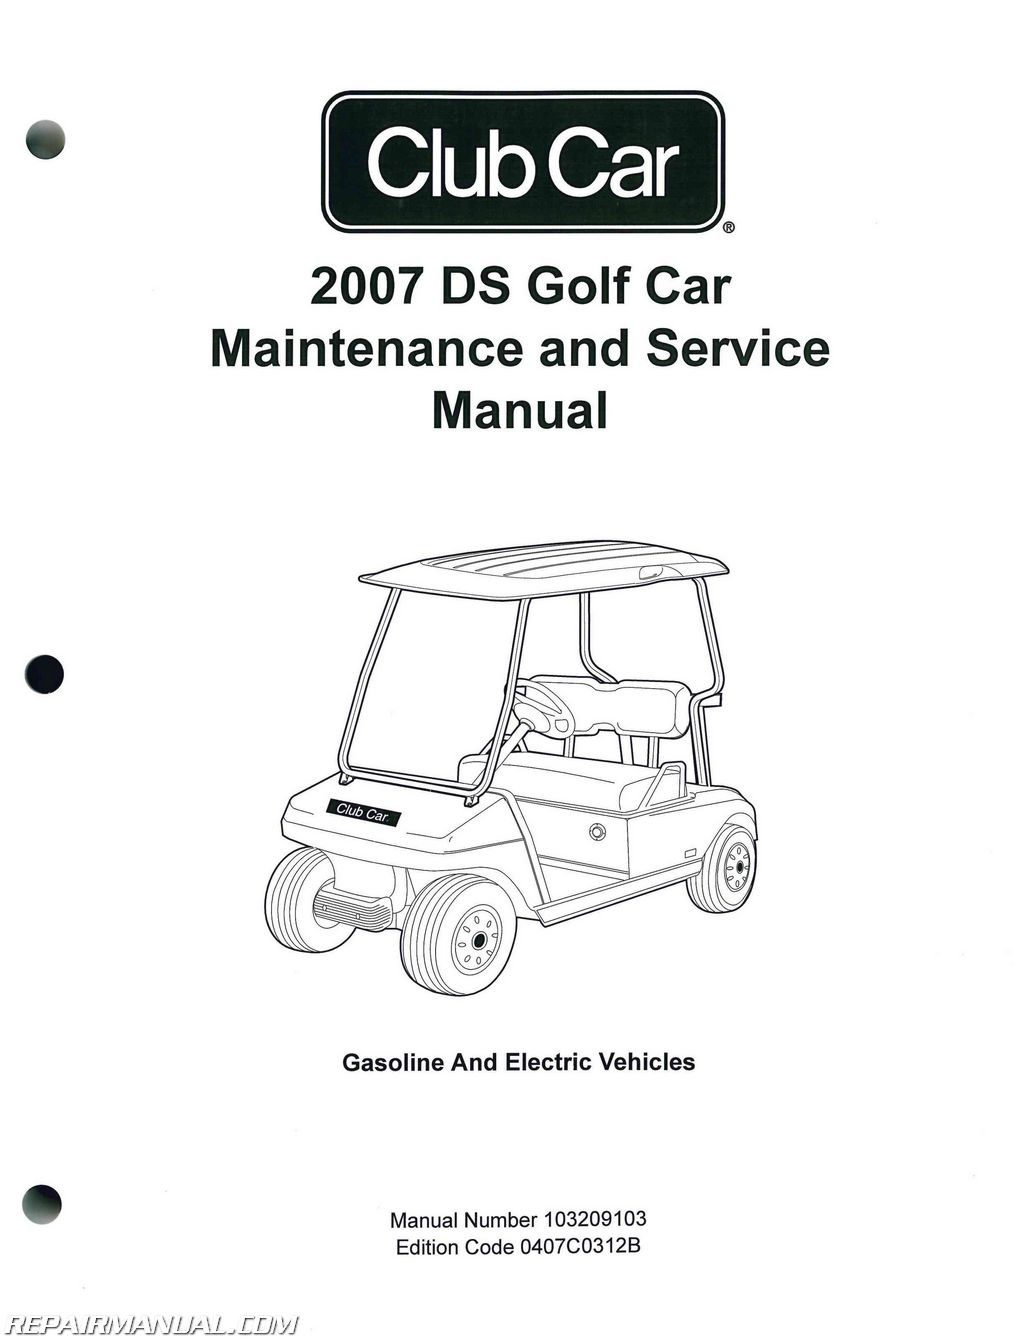 2005 Club Car Ds Wiring Diagram For 1992 36 Volt Golf Cart 2007 Gas And Electric Service Manual2005